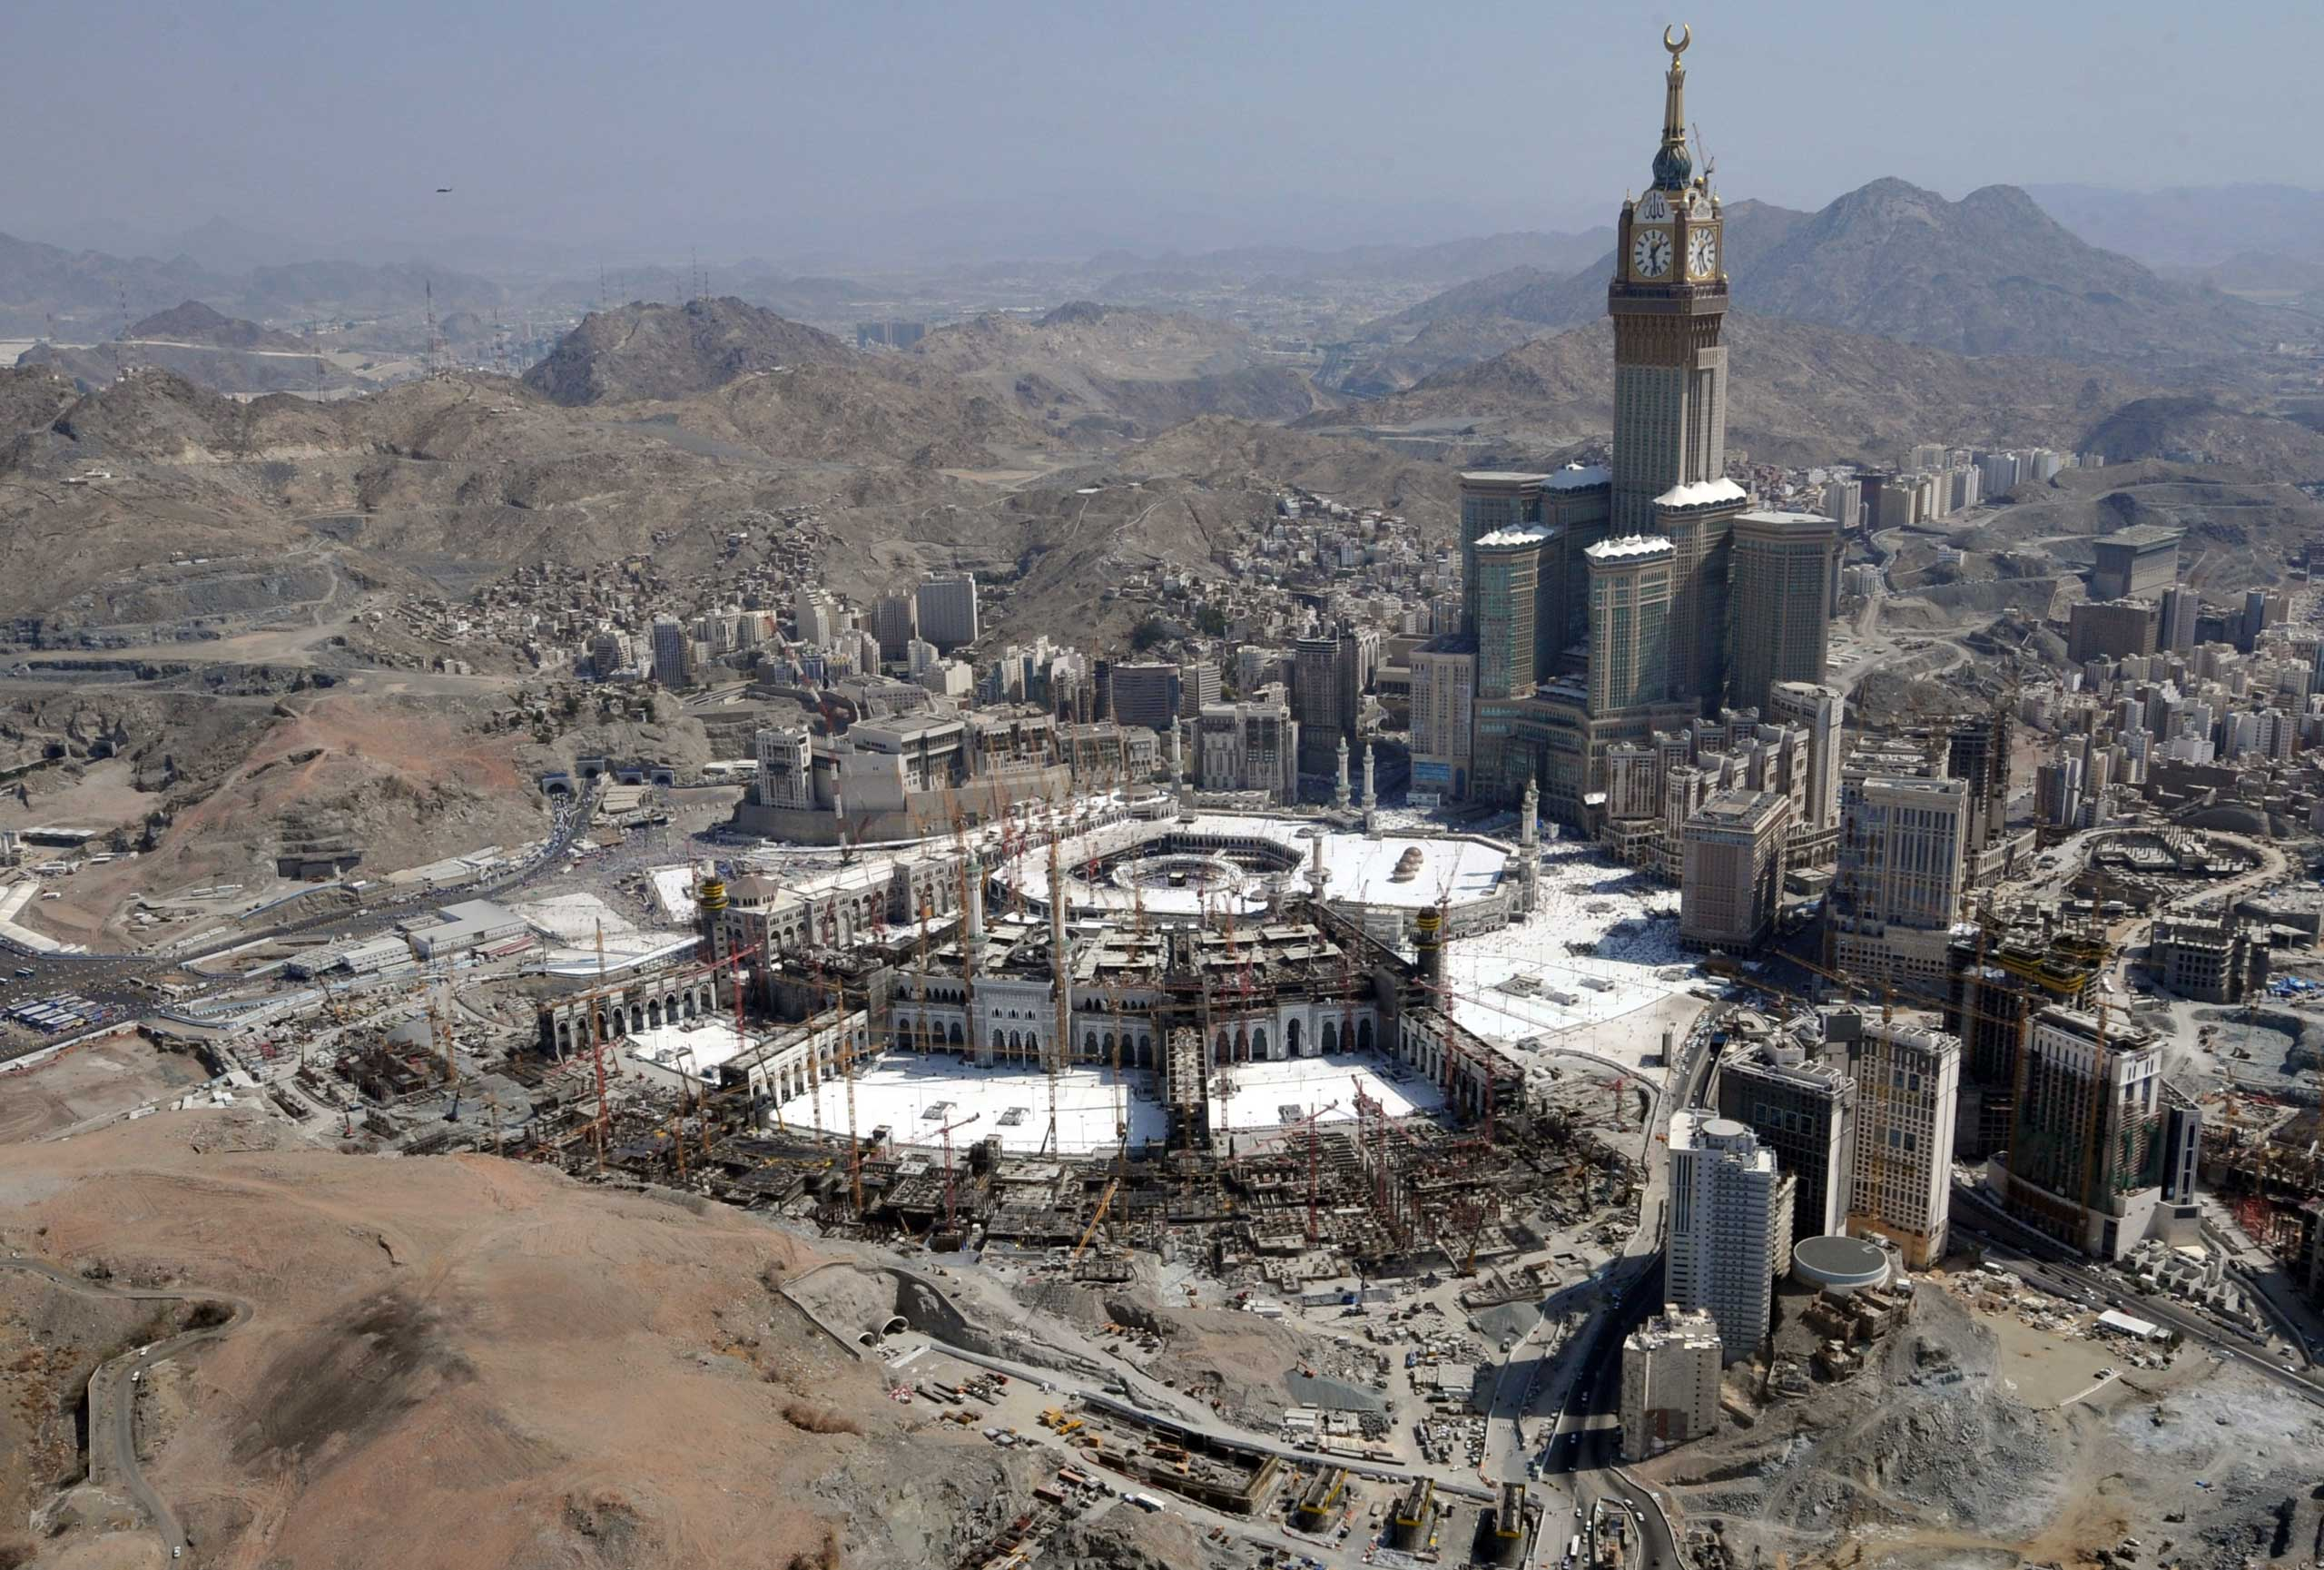 An aerial view shows the Clock Tower, the Grand Mosque, and surrounding constructions sites in the holy city of Mecca, in 2013.